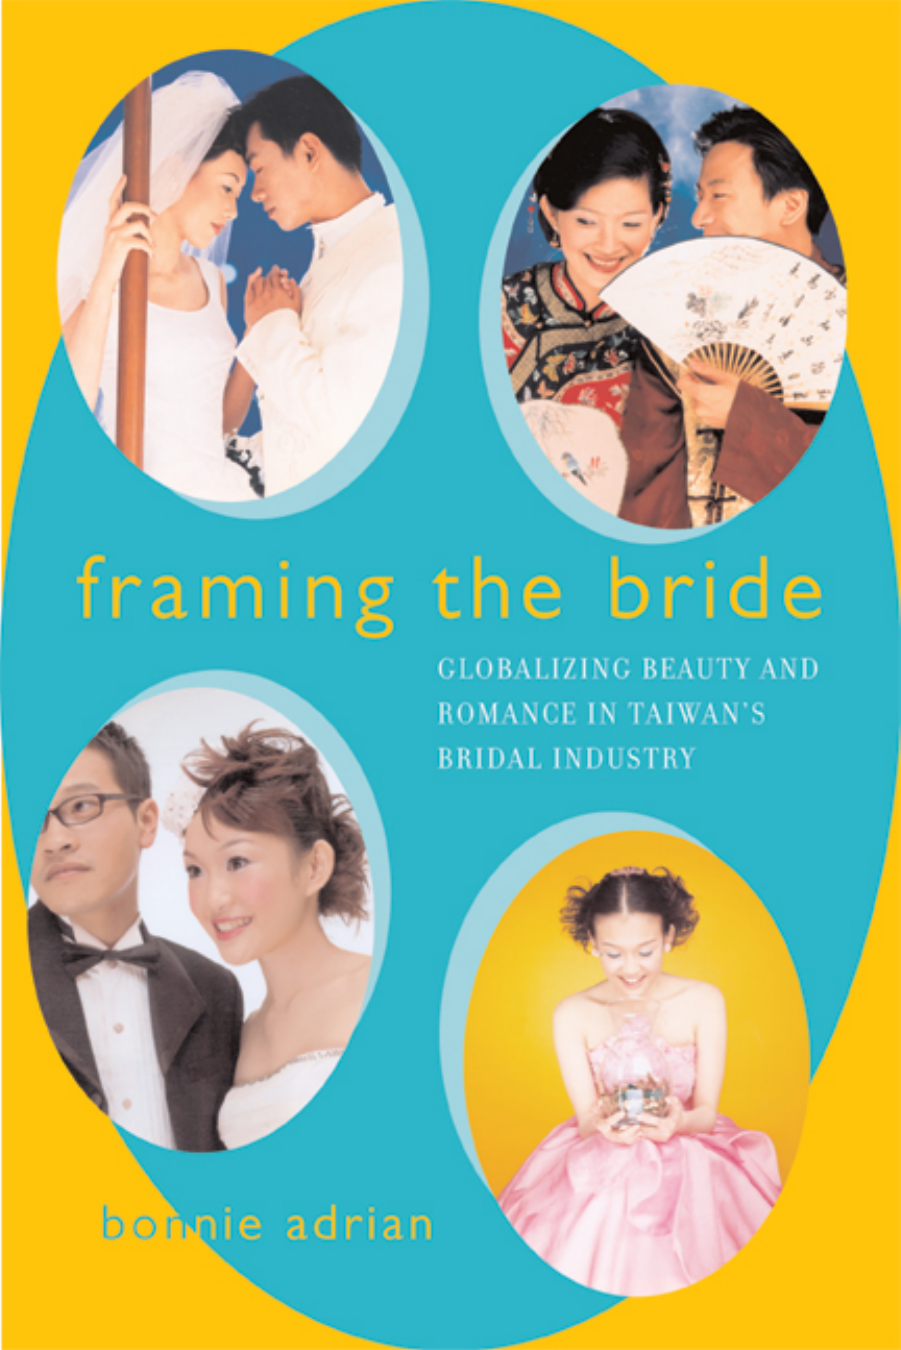 buy online 6cbf5 1eafc Bonnie Adrian - Framing the Bride- Globalizing Beauty and Romance in  Taiwans Bridal Industry (2003)